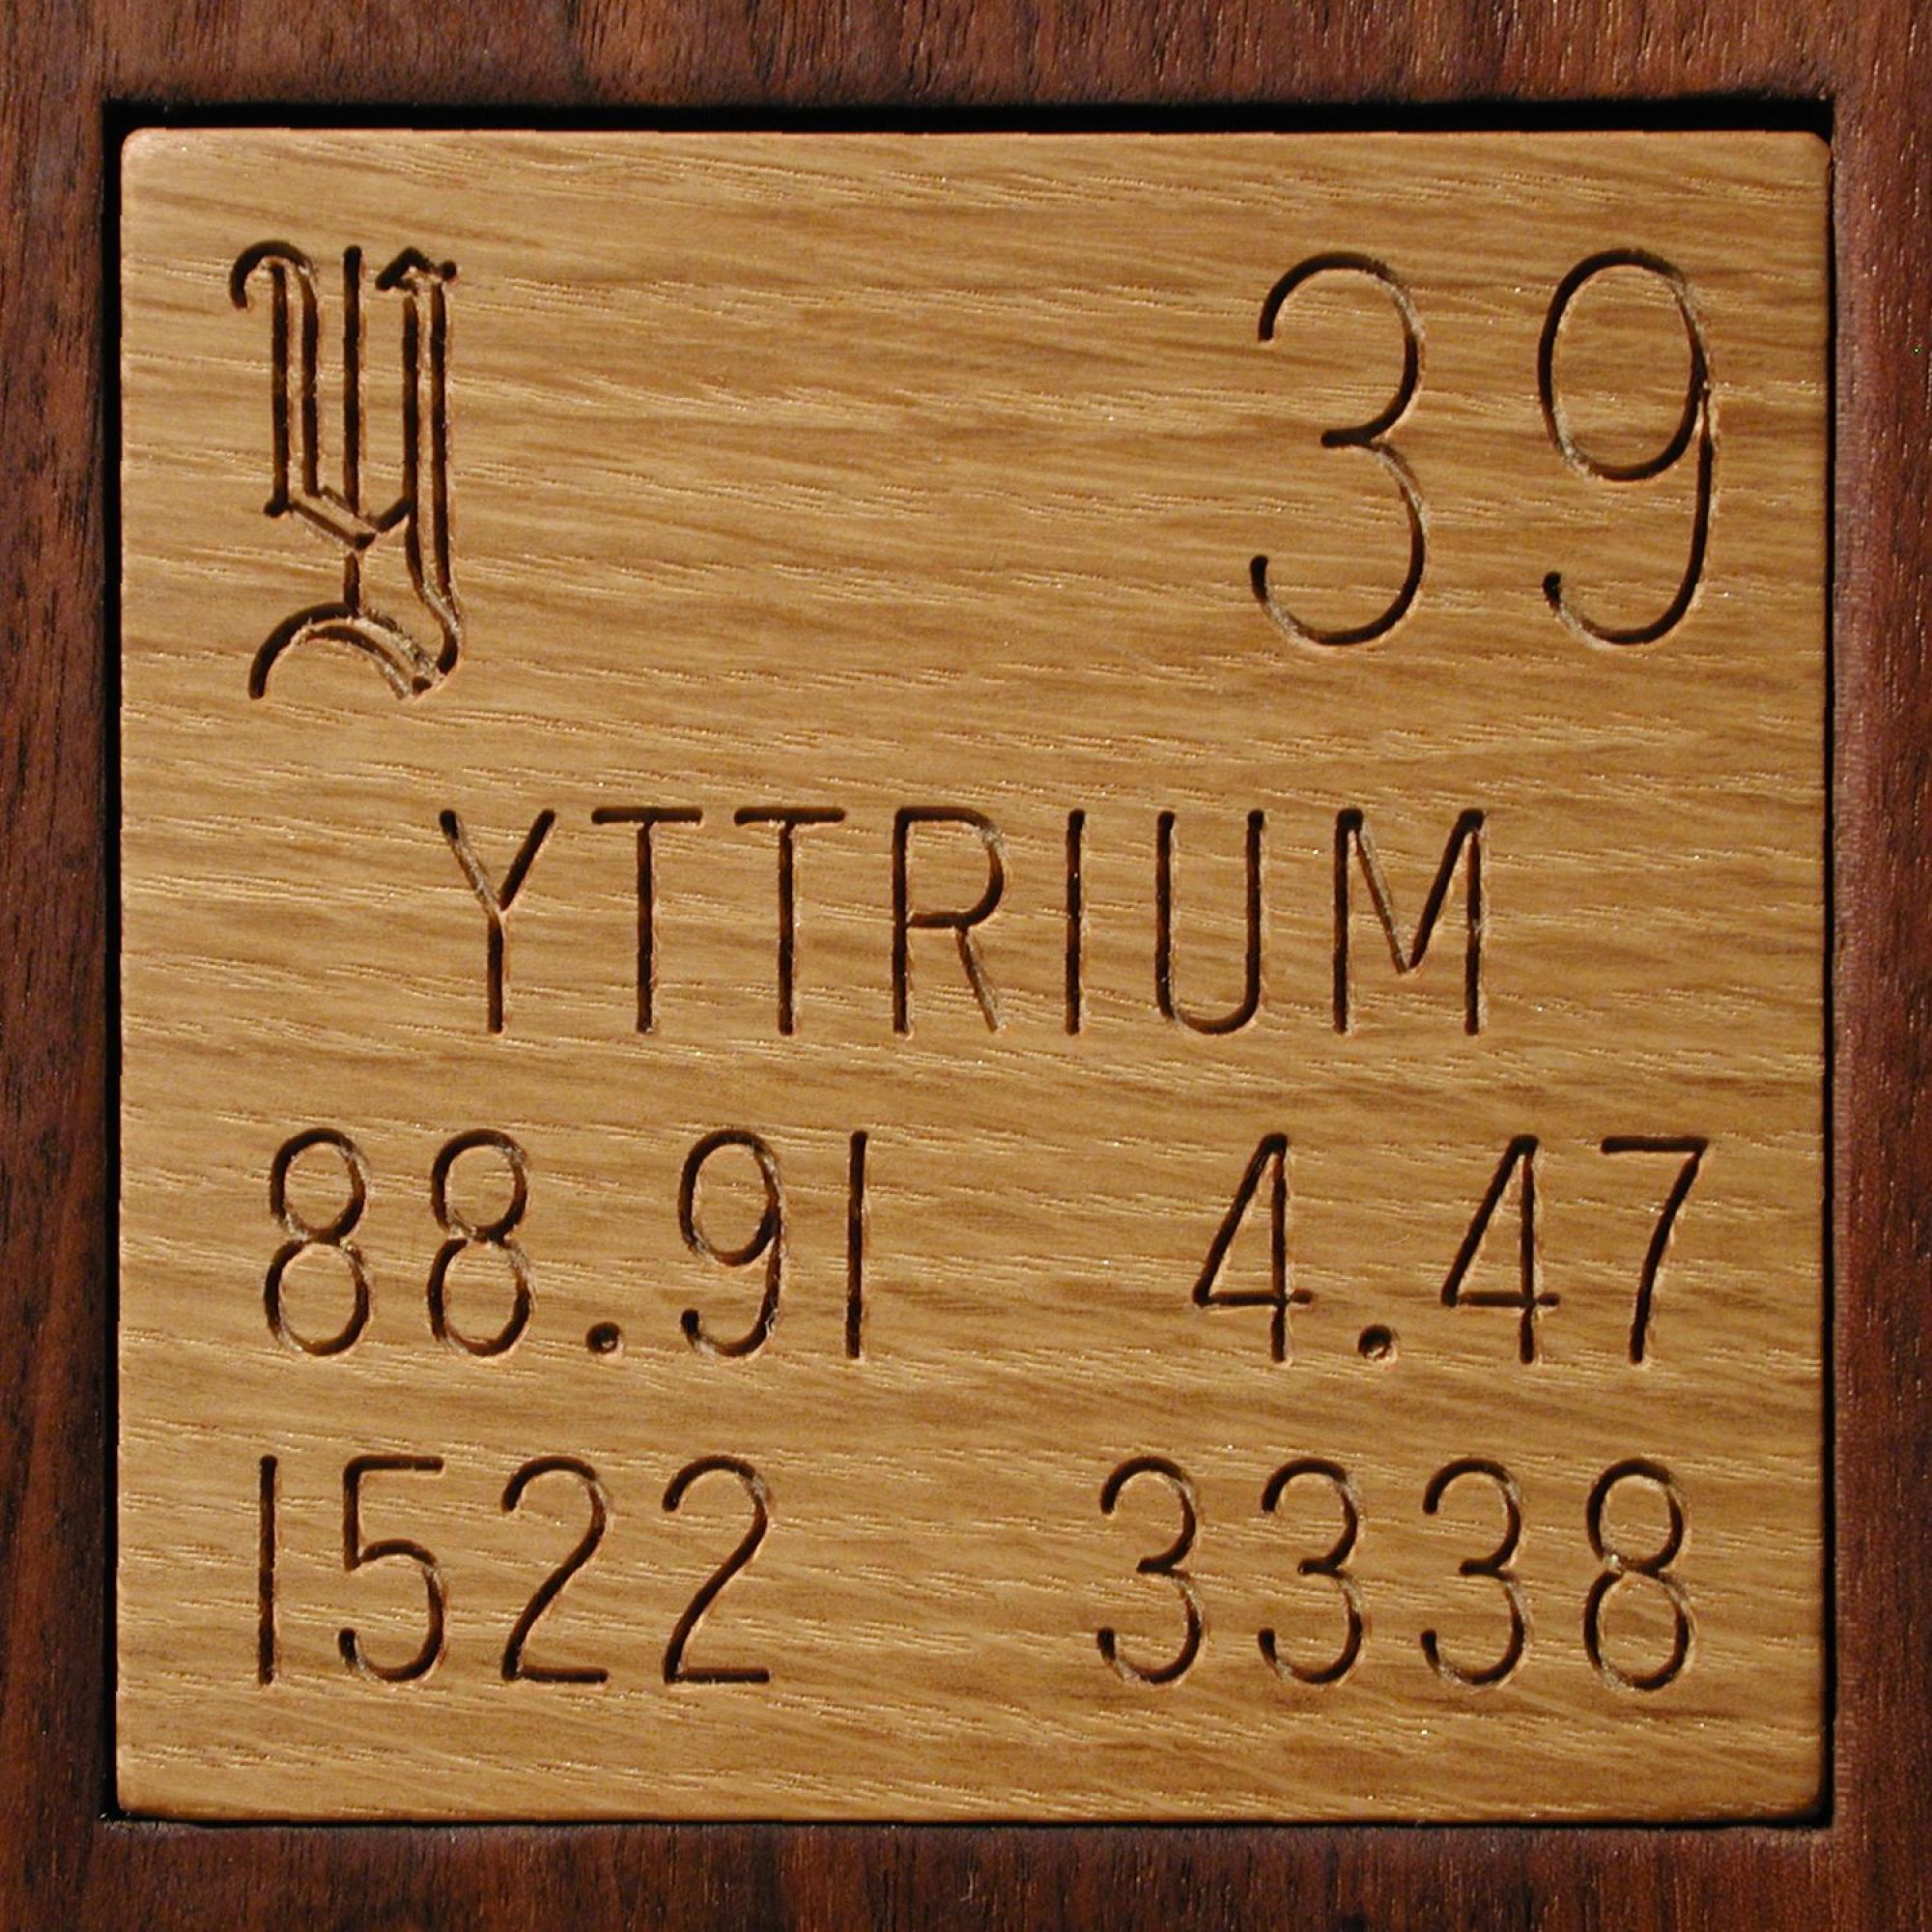 Facts pictures stories about the element yttrium in the periodic yttrium gamestrikefo Gallery